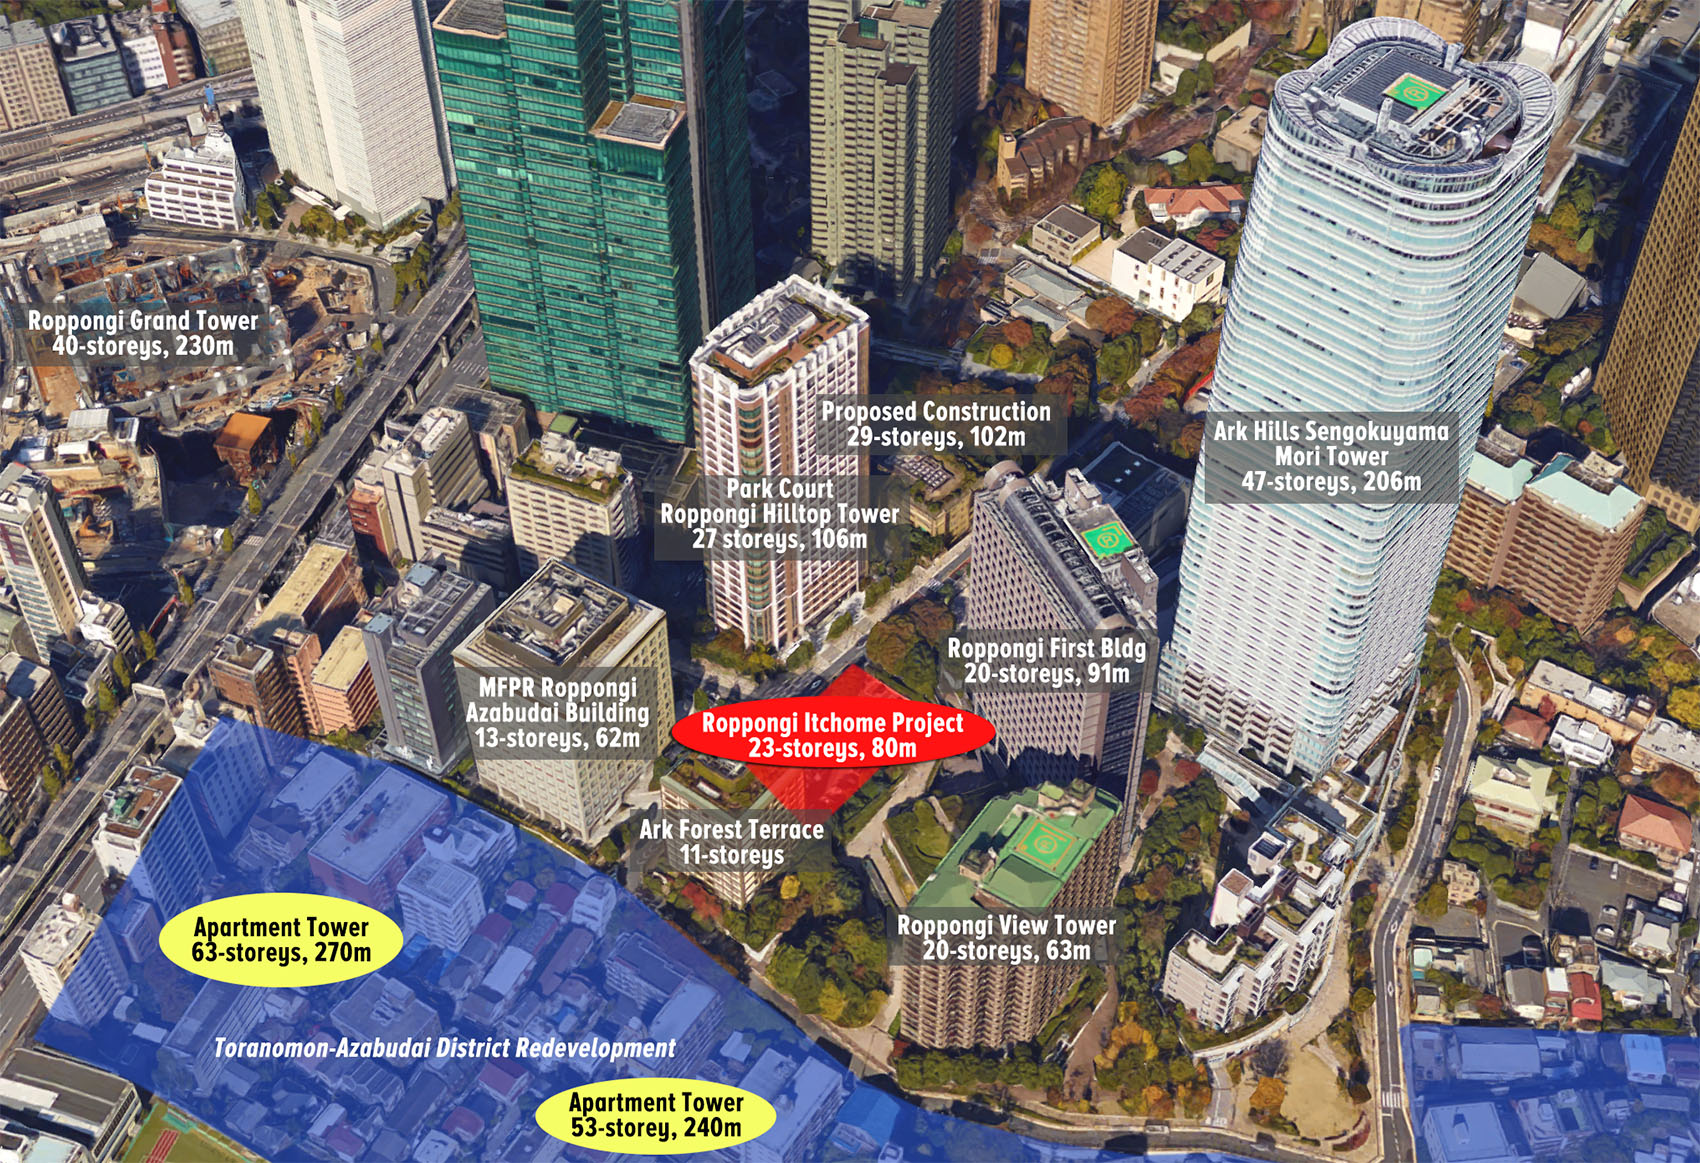 23-storey apartment tower planned for Roppongi Itchome